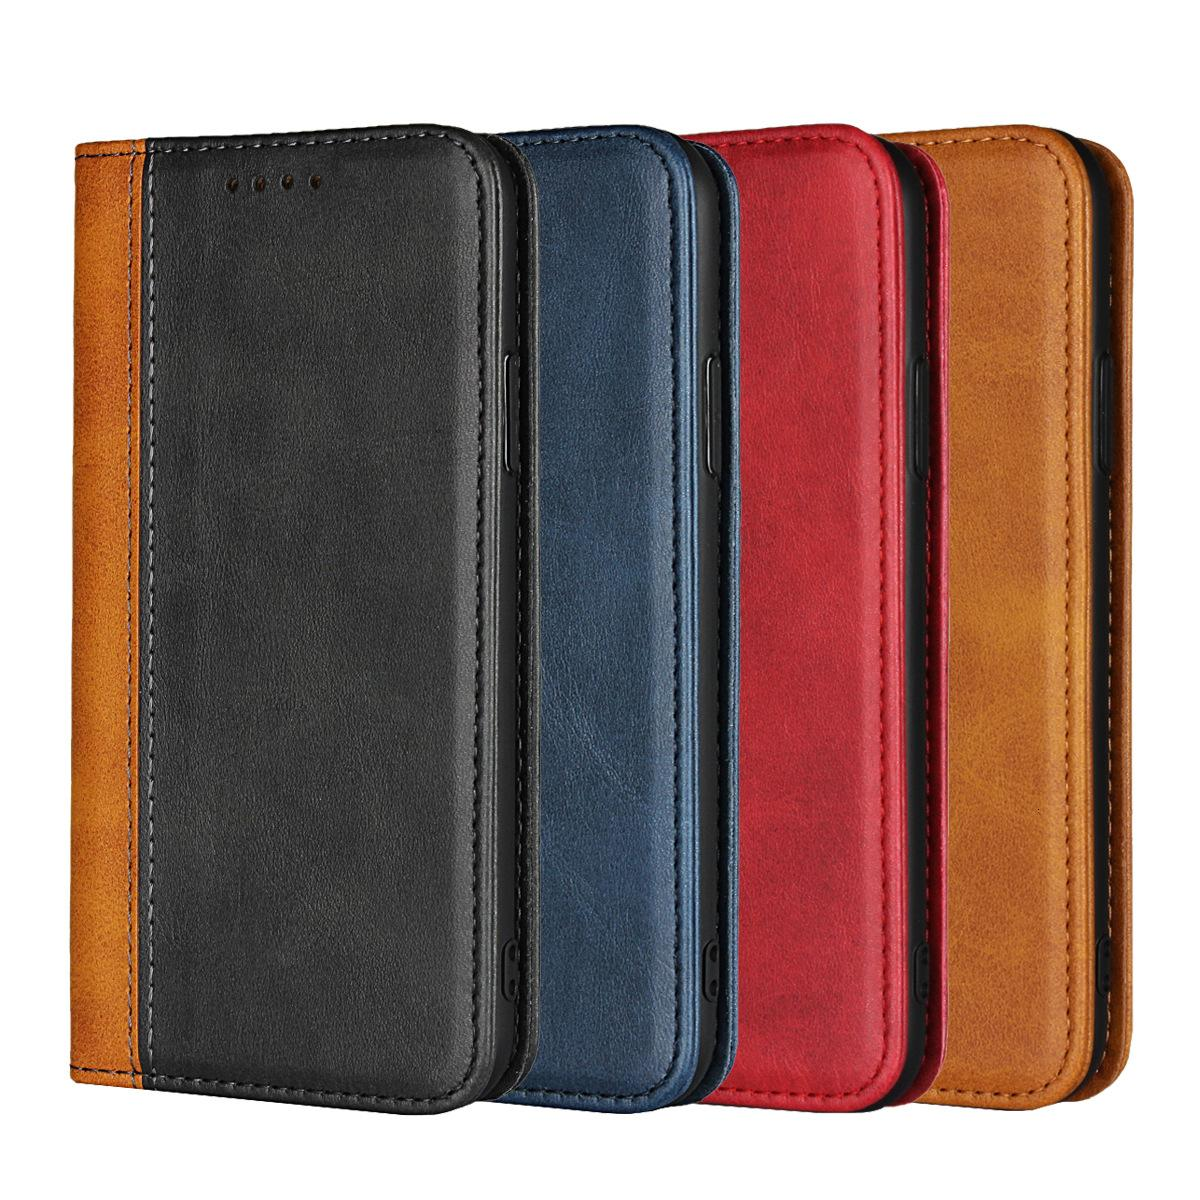 8 card slot Luxury calfskin leather wallet in black and blue